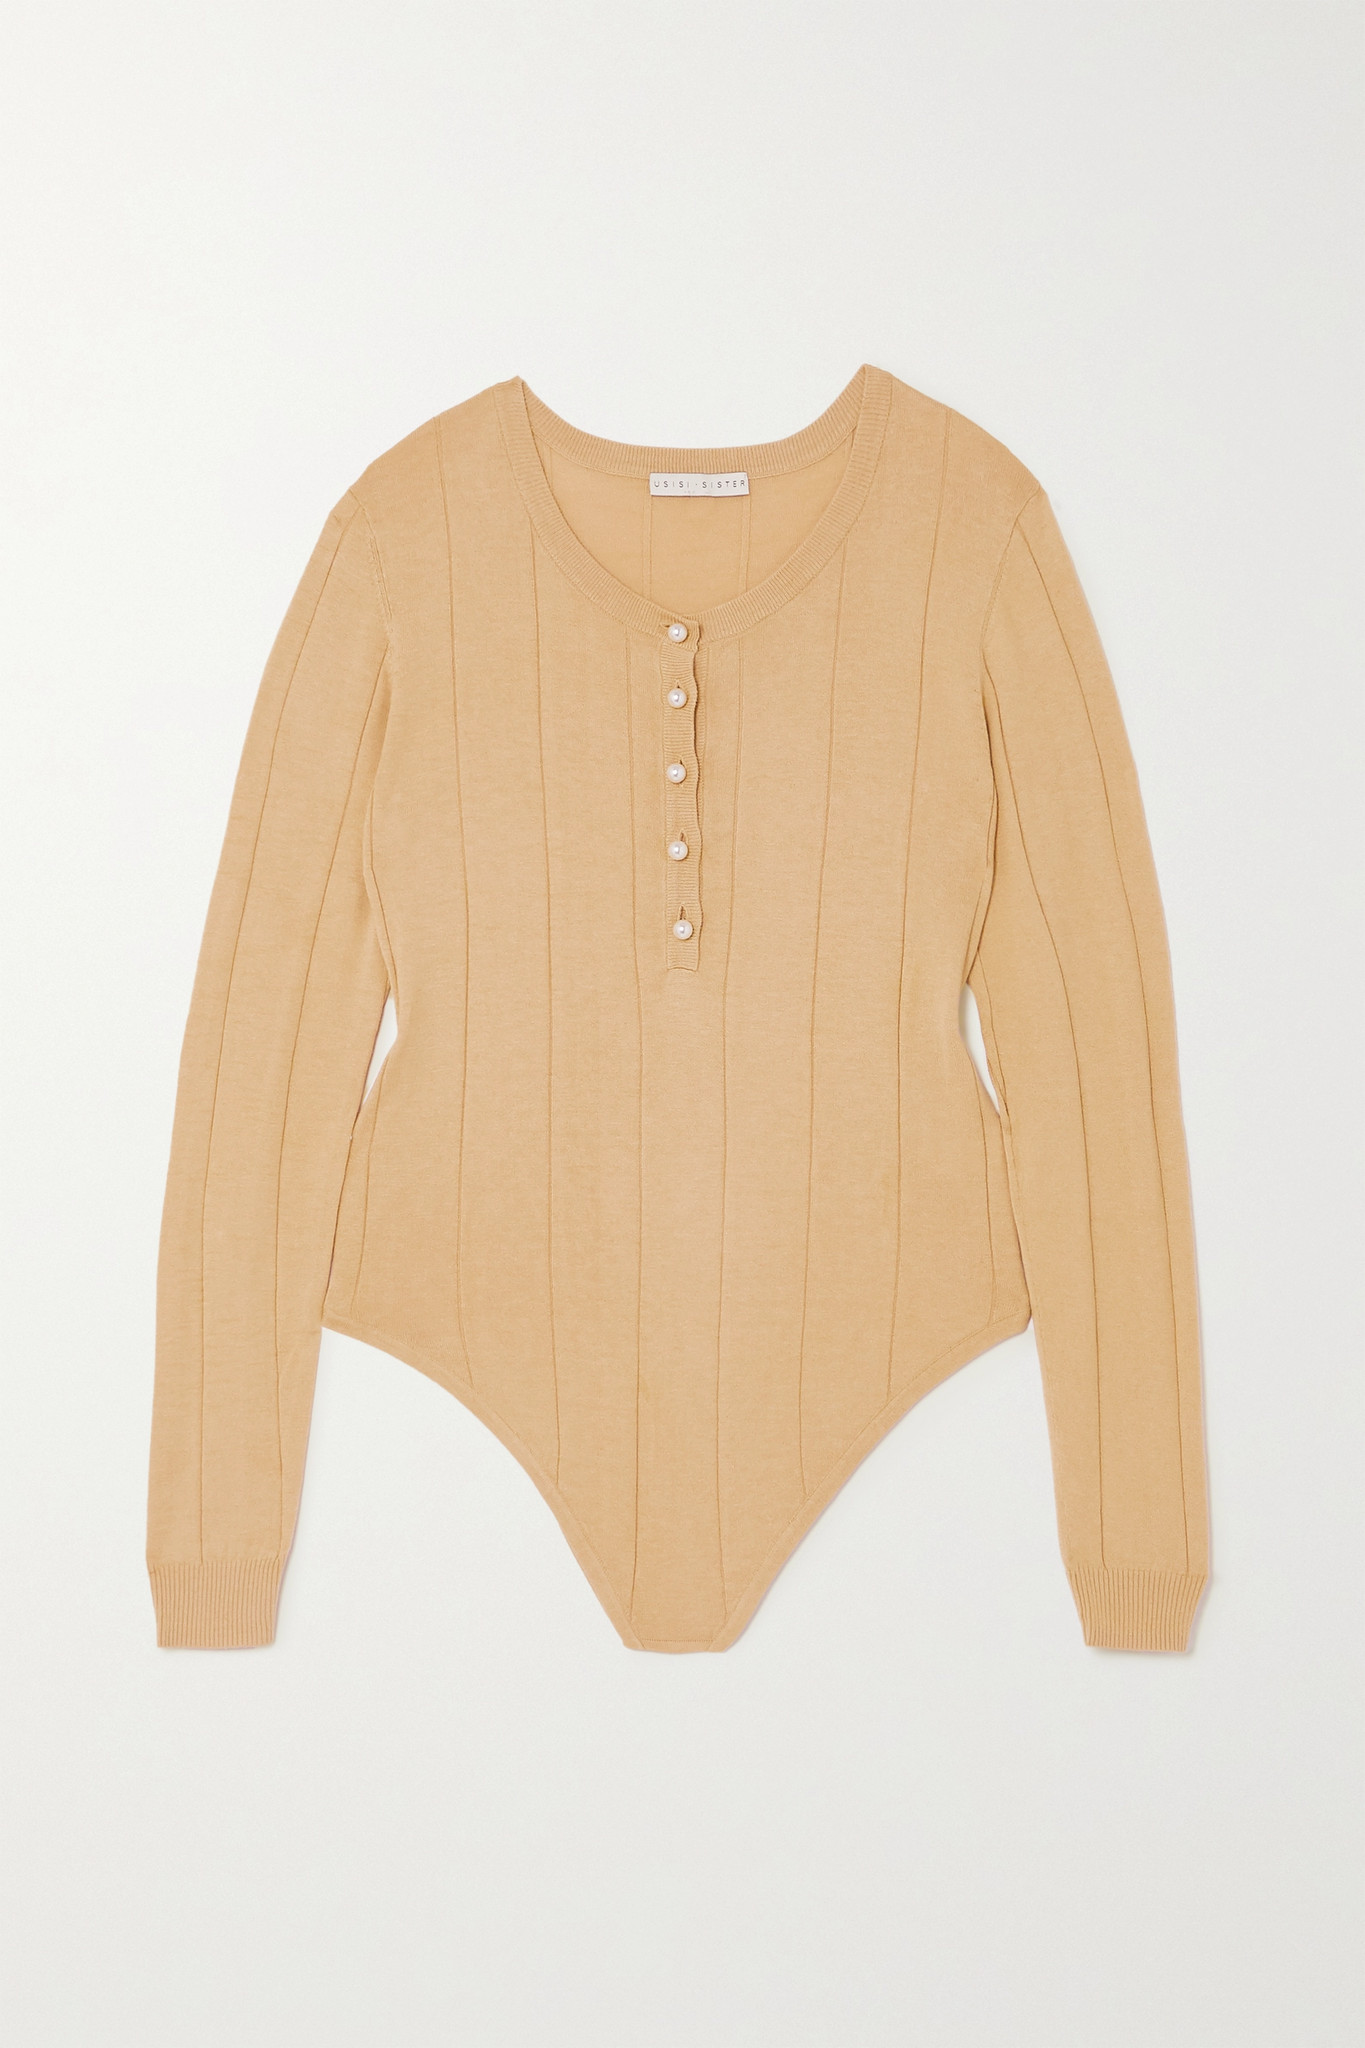 USISI SISTER - Faux Pearl-embellished Ribbed Cotton-blend Bodysuit - Brown - small